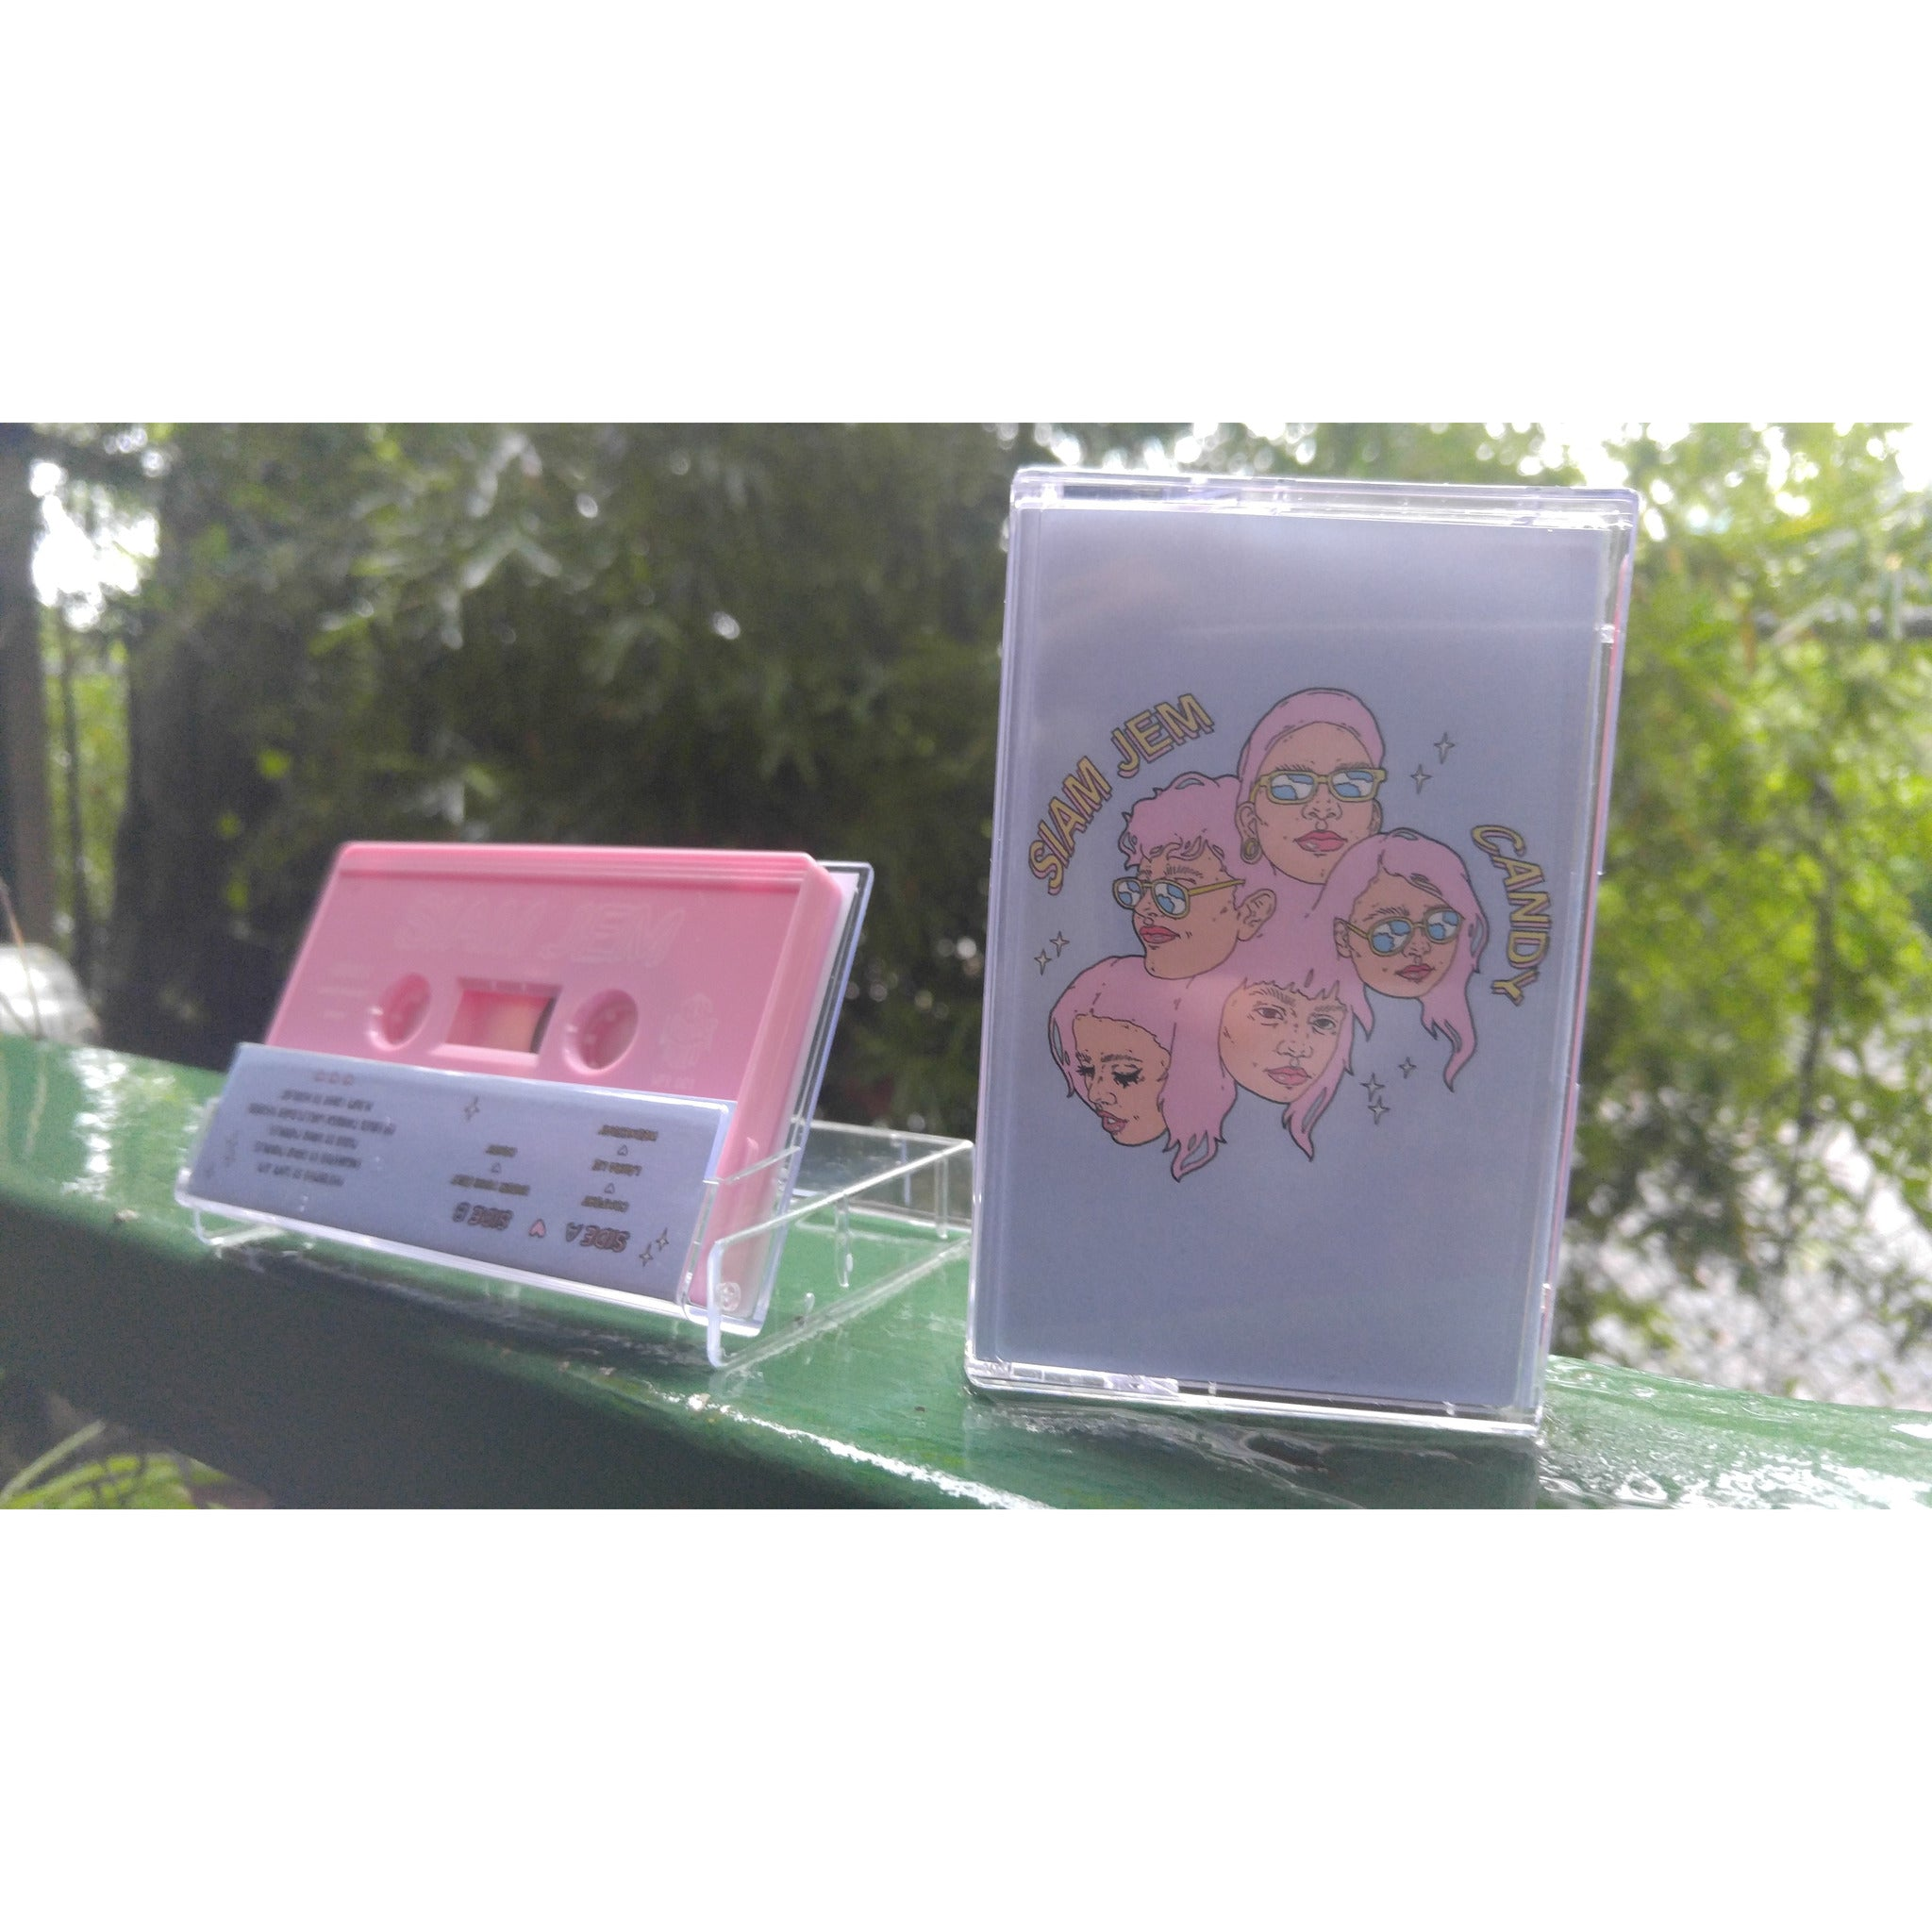 Siam Jem - Candy EP (Cassette) - Wallflower Records